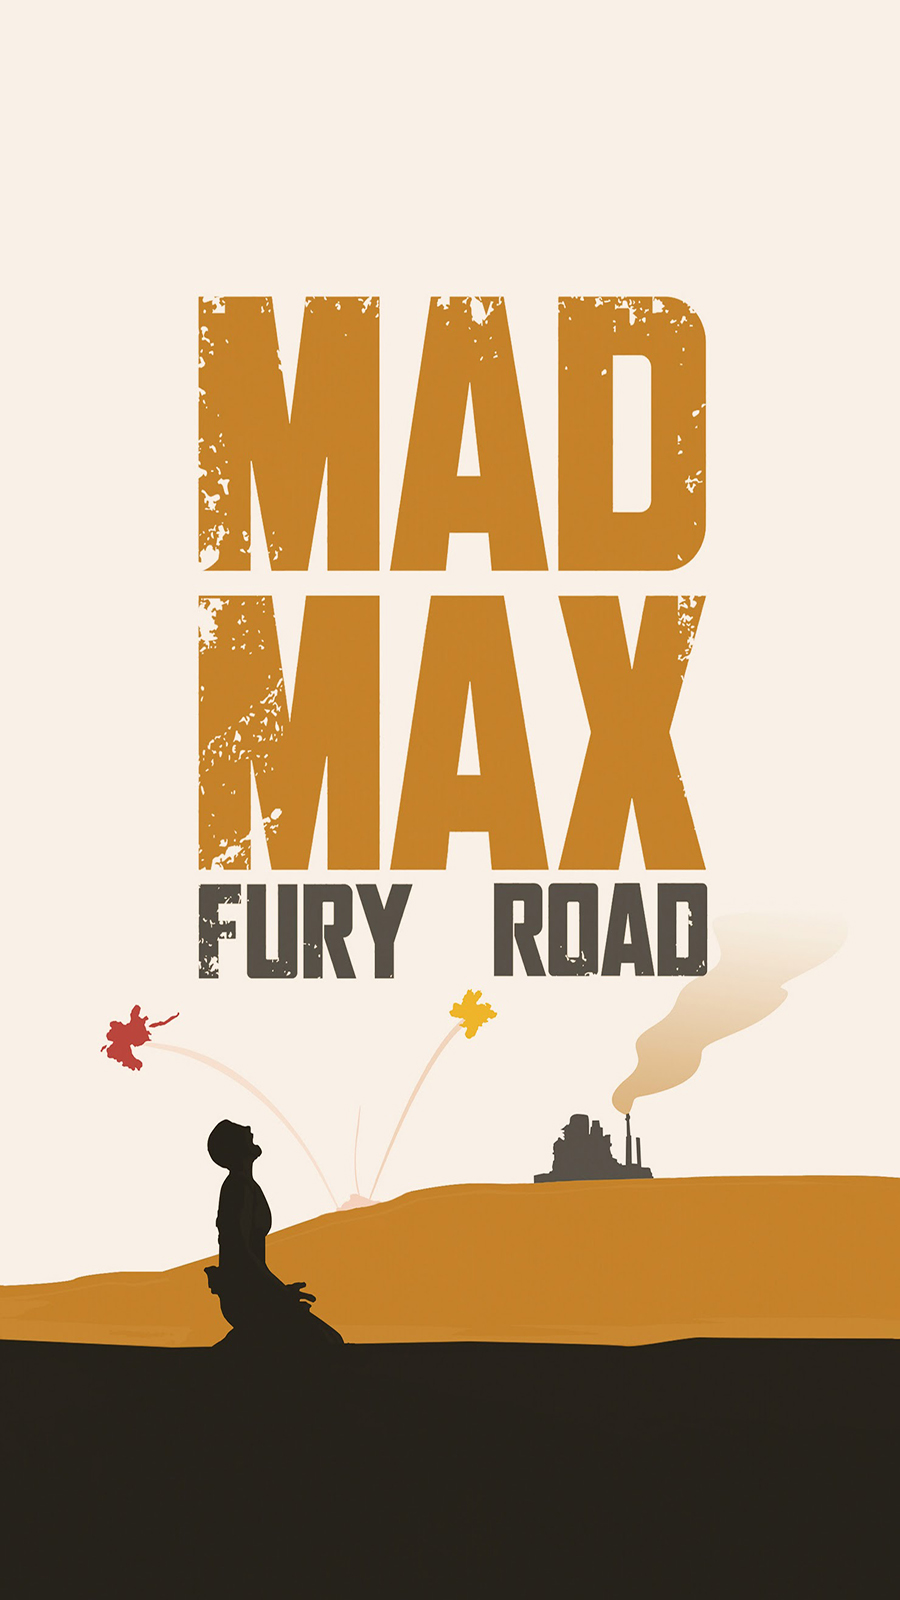 Mad Max Wallpapers Free Download